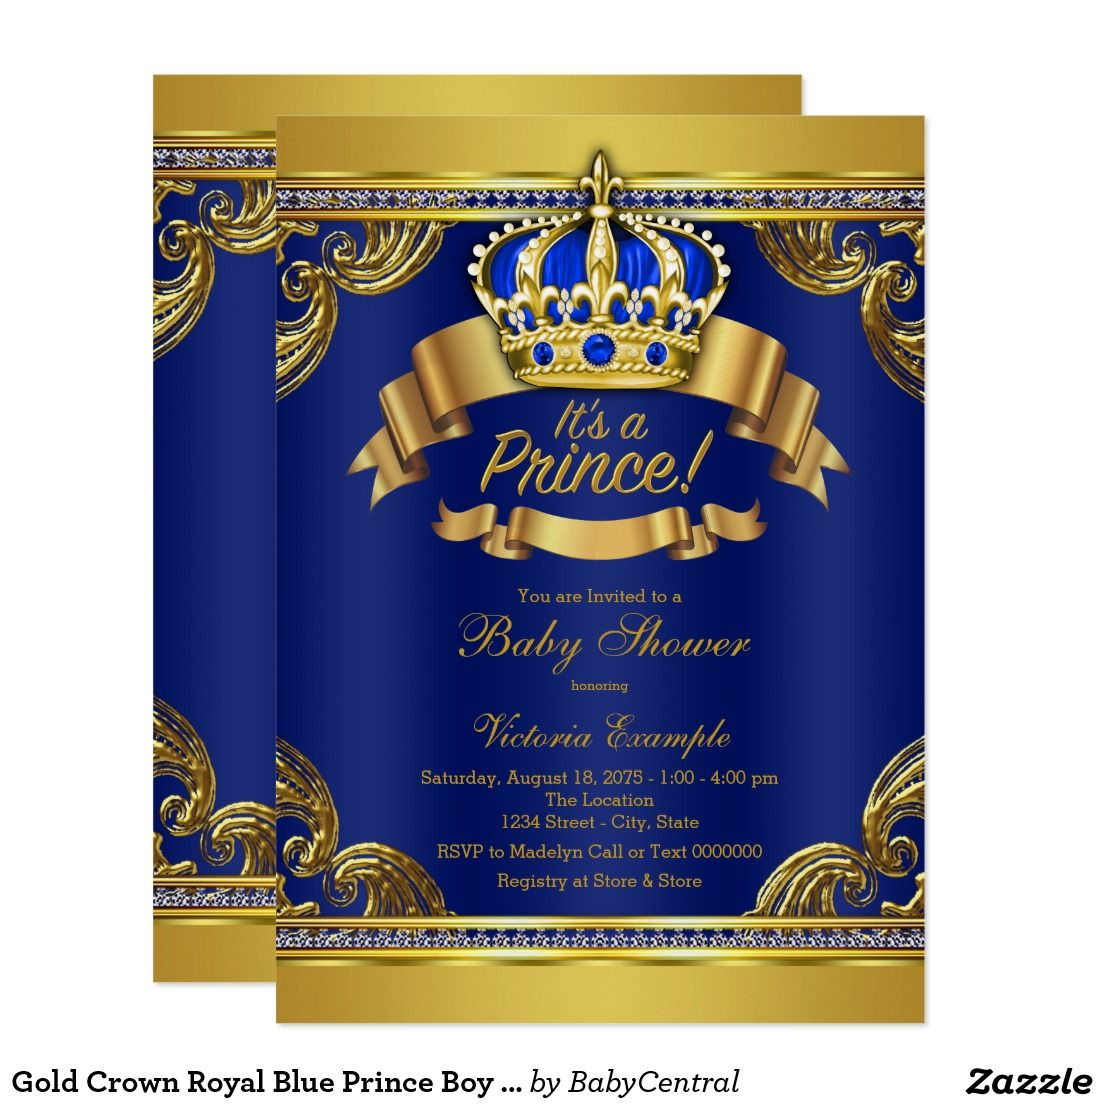 Gold Crown Royal Blue Prince Boy Baby Shower Invitations | Little ...